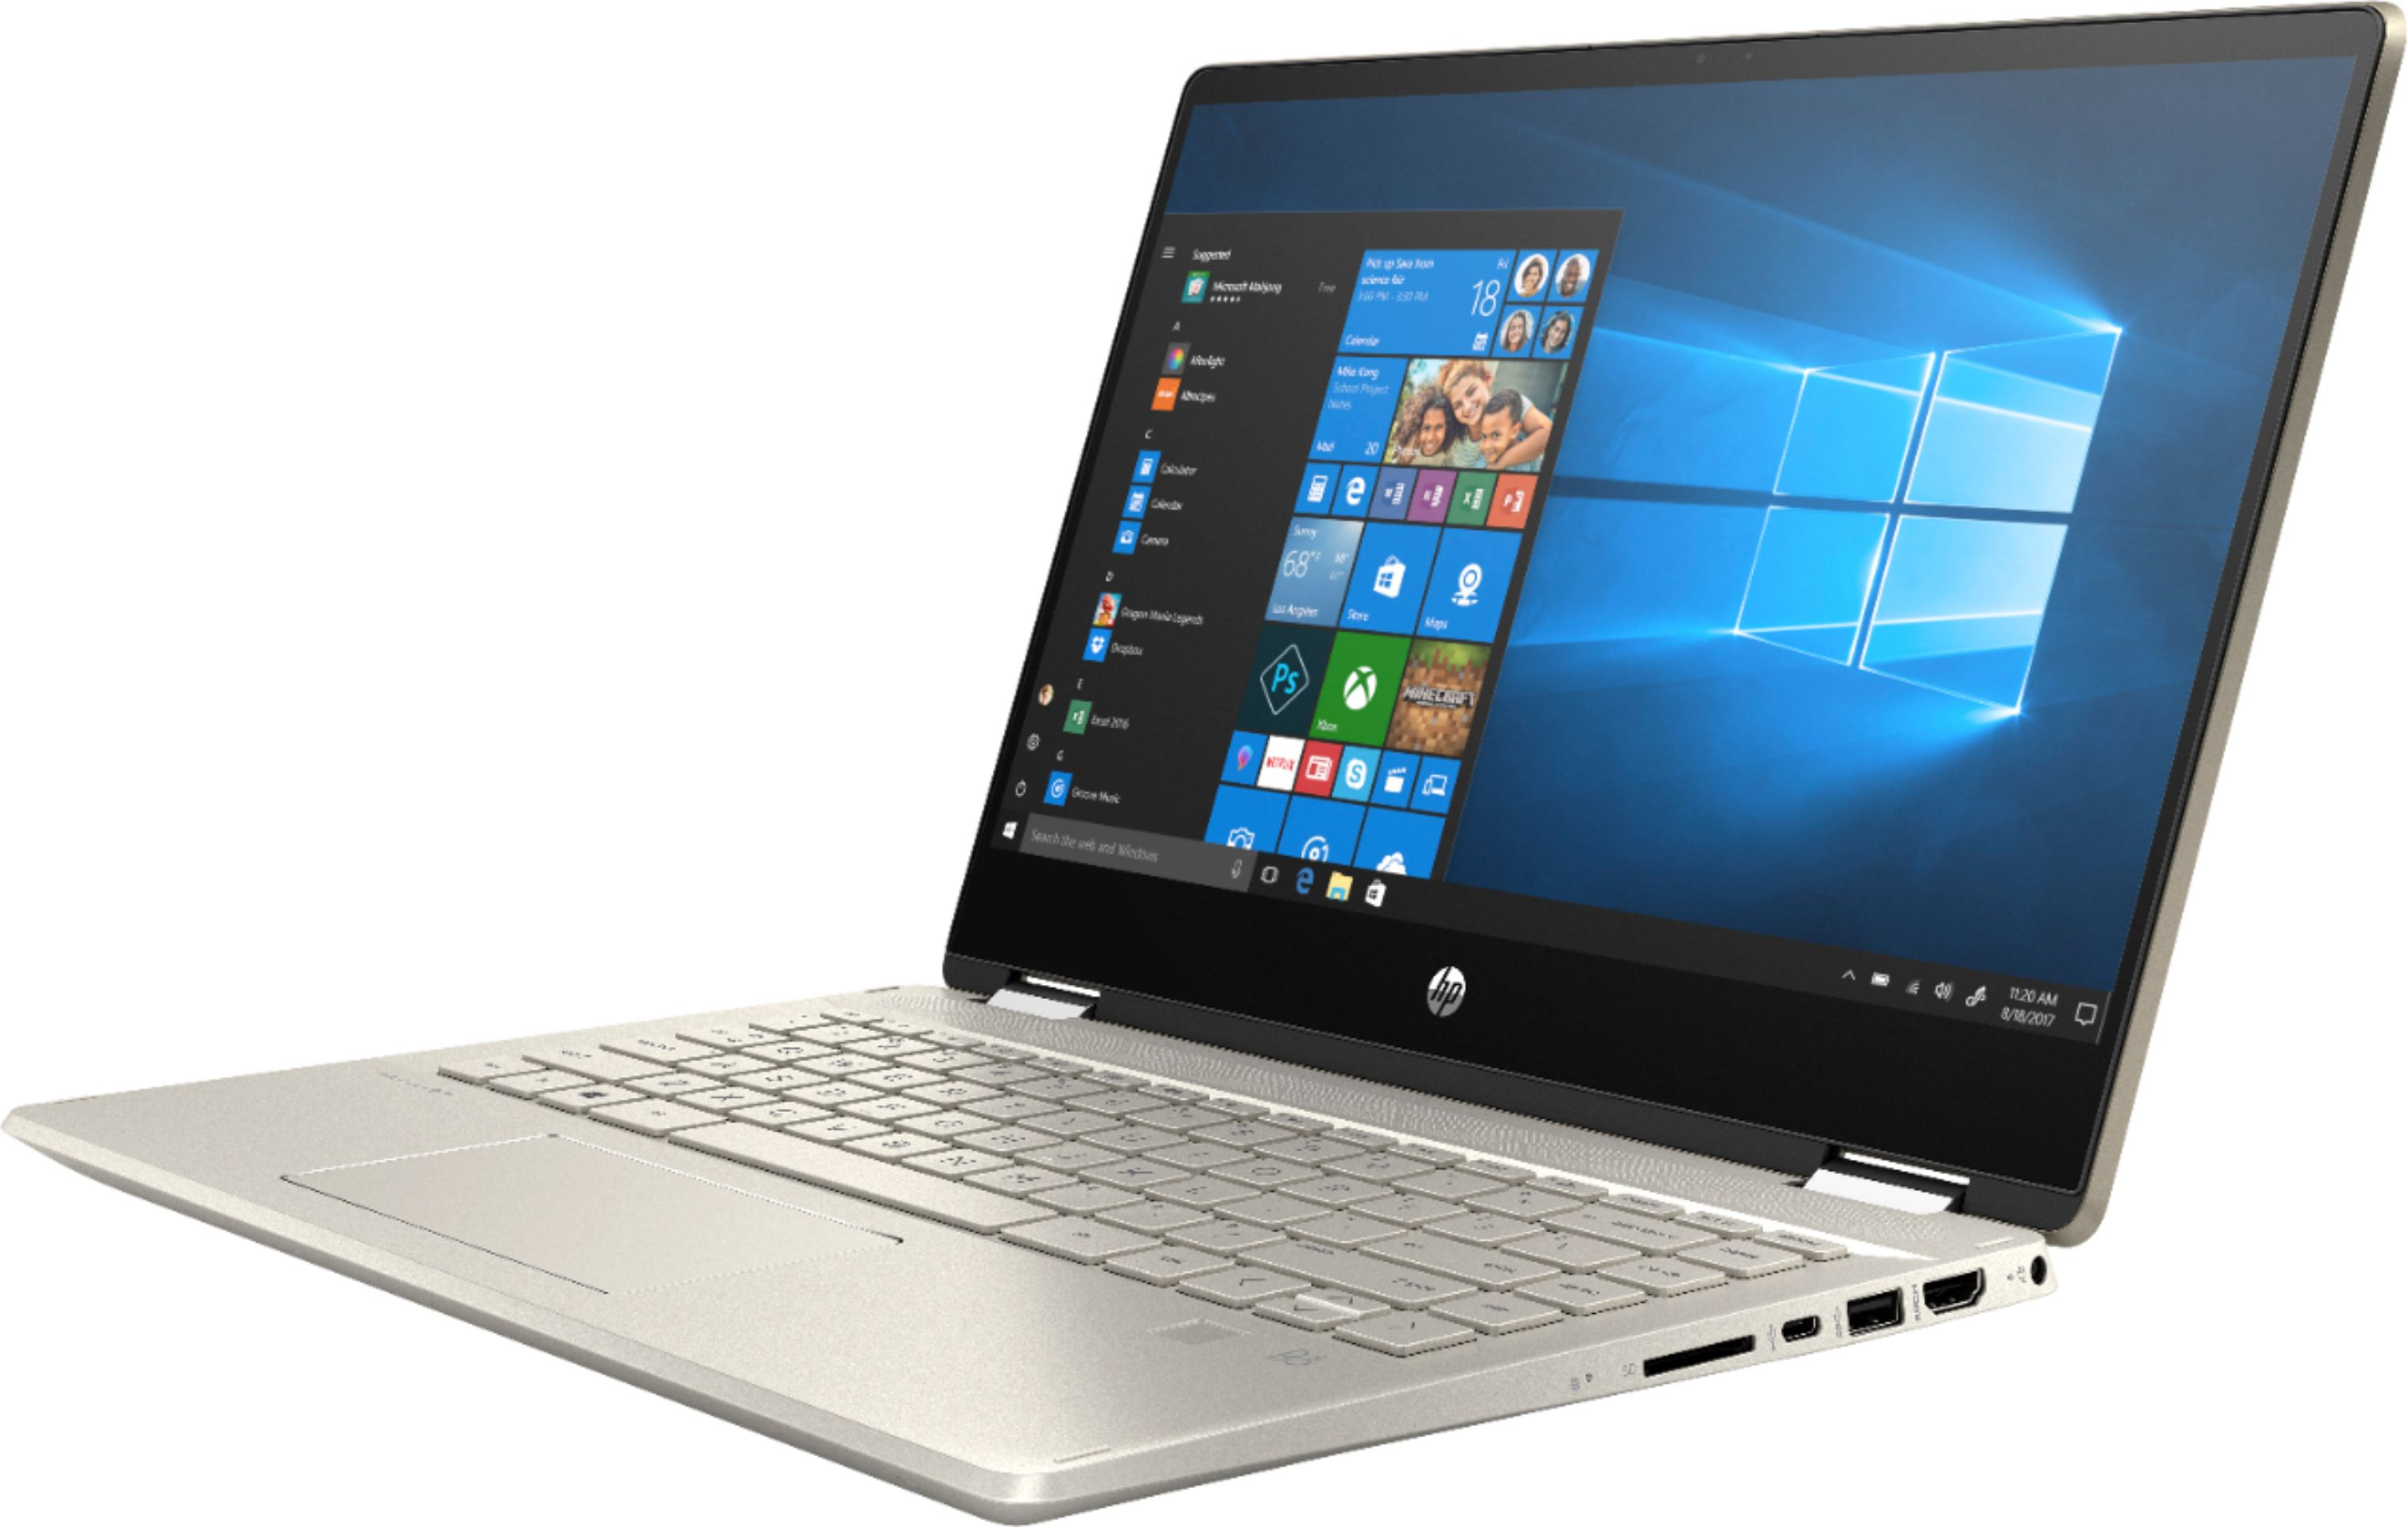 """Left Zoom. HP - Geek Squad Certified Refurbished Pavilion x360 2-in-1 14"""" Touch-Screen Laptop - Intel Core i5 - 8GB Memory - 128GB SSD - Anodized Finish In Warm Gold And Luminous Gold."""